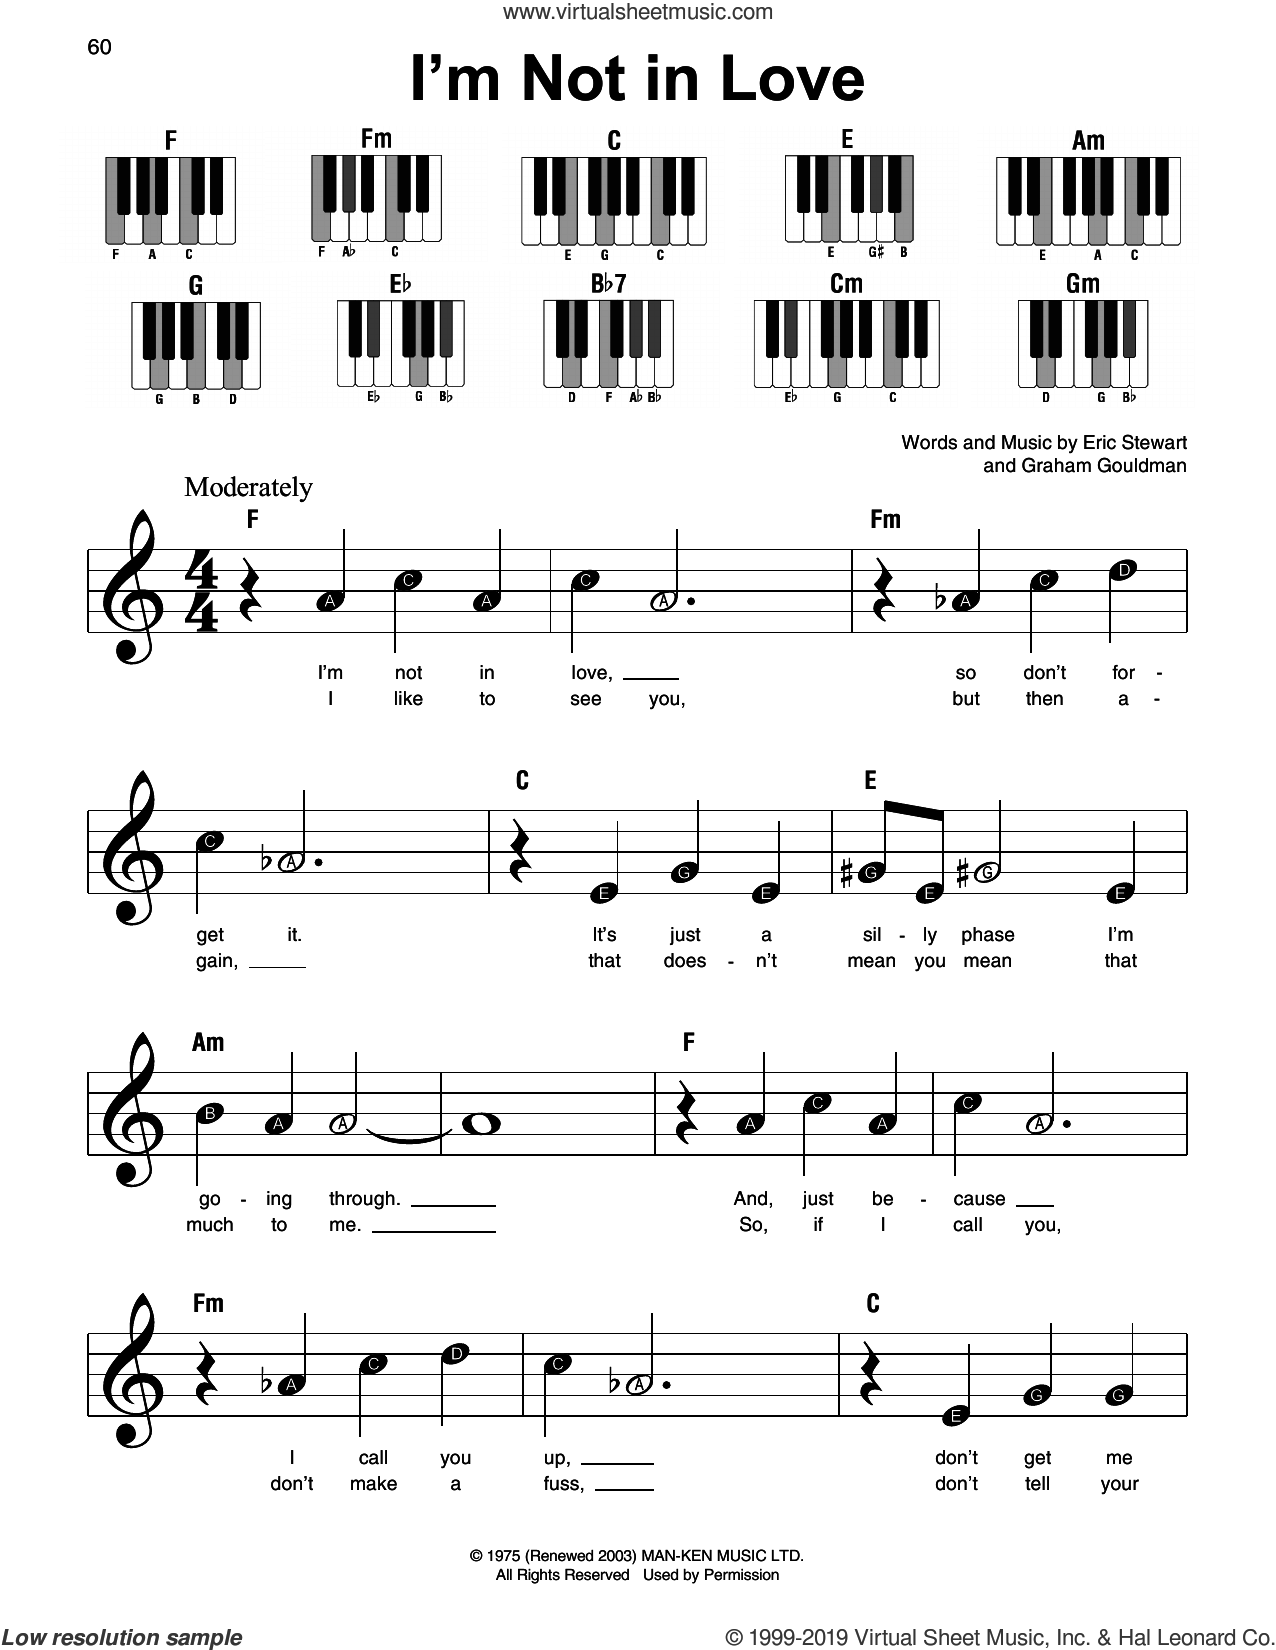 I'm Not In Love sheet music for piano solo by 10Cc, Eric Stewart and Graham Gouldman, beginner skill level